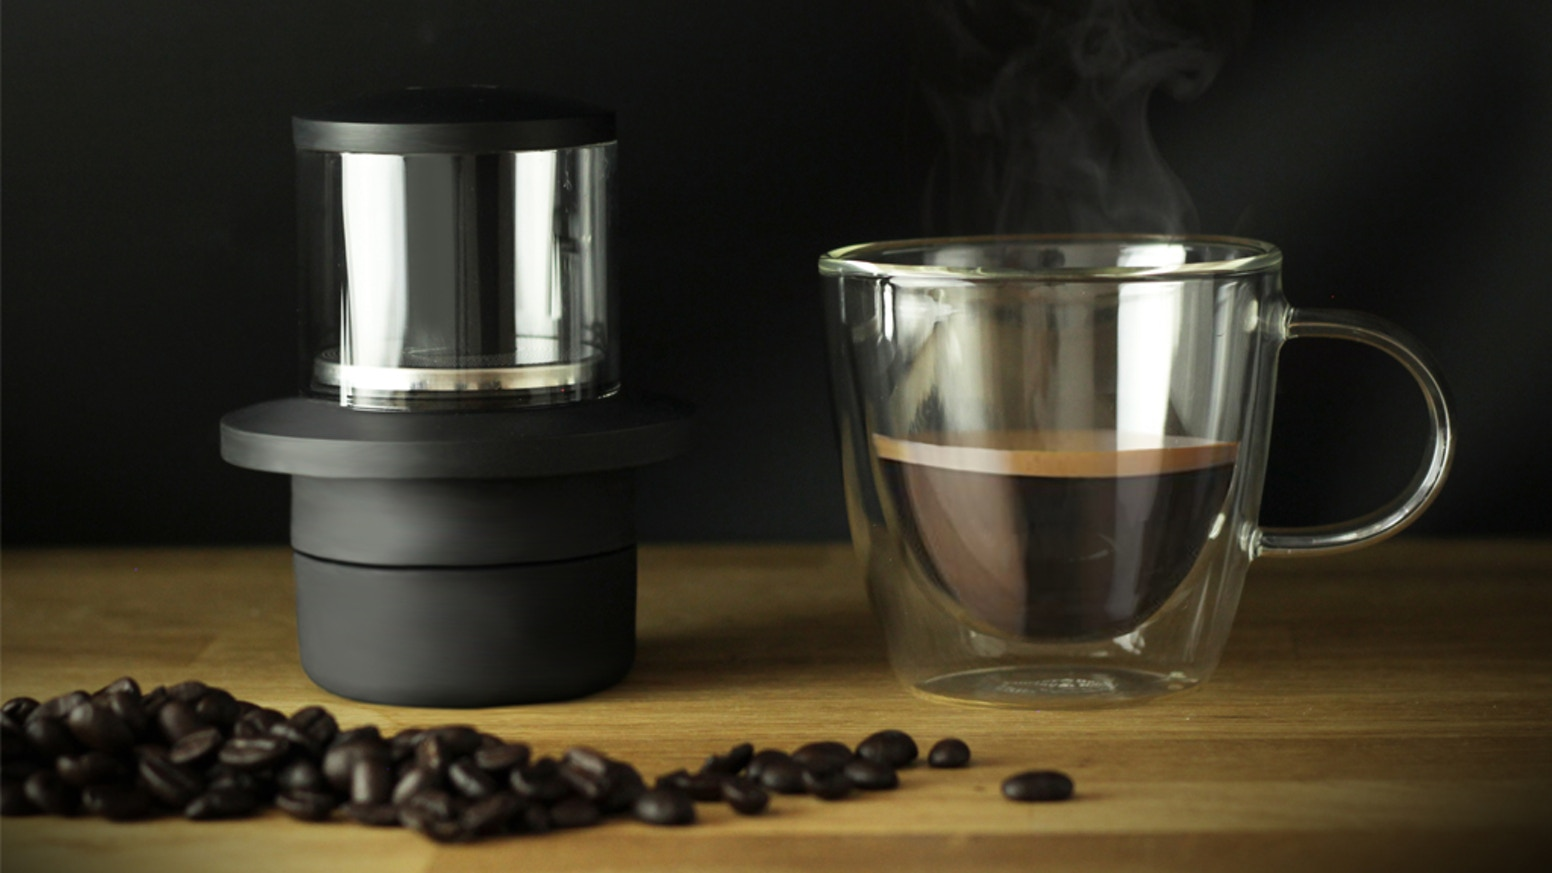 Pollution Saving Espresso Maker No Bigger than a Cup